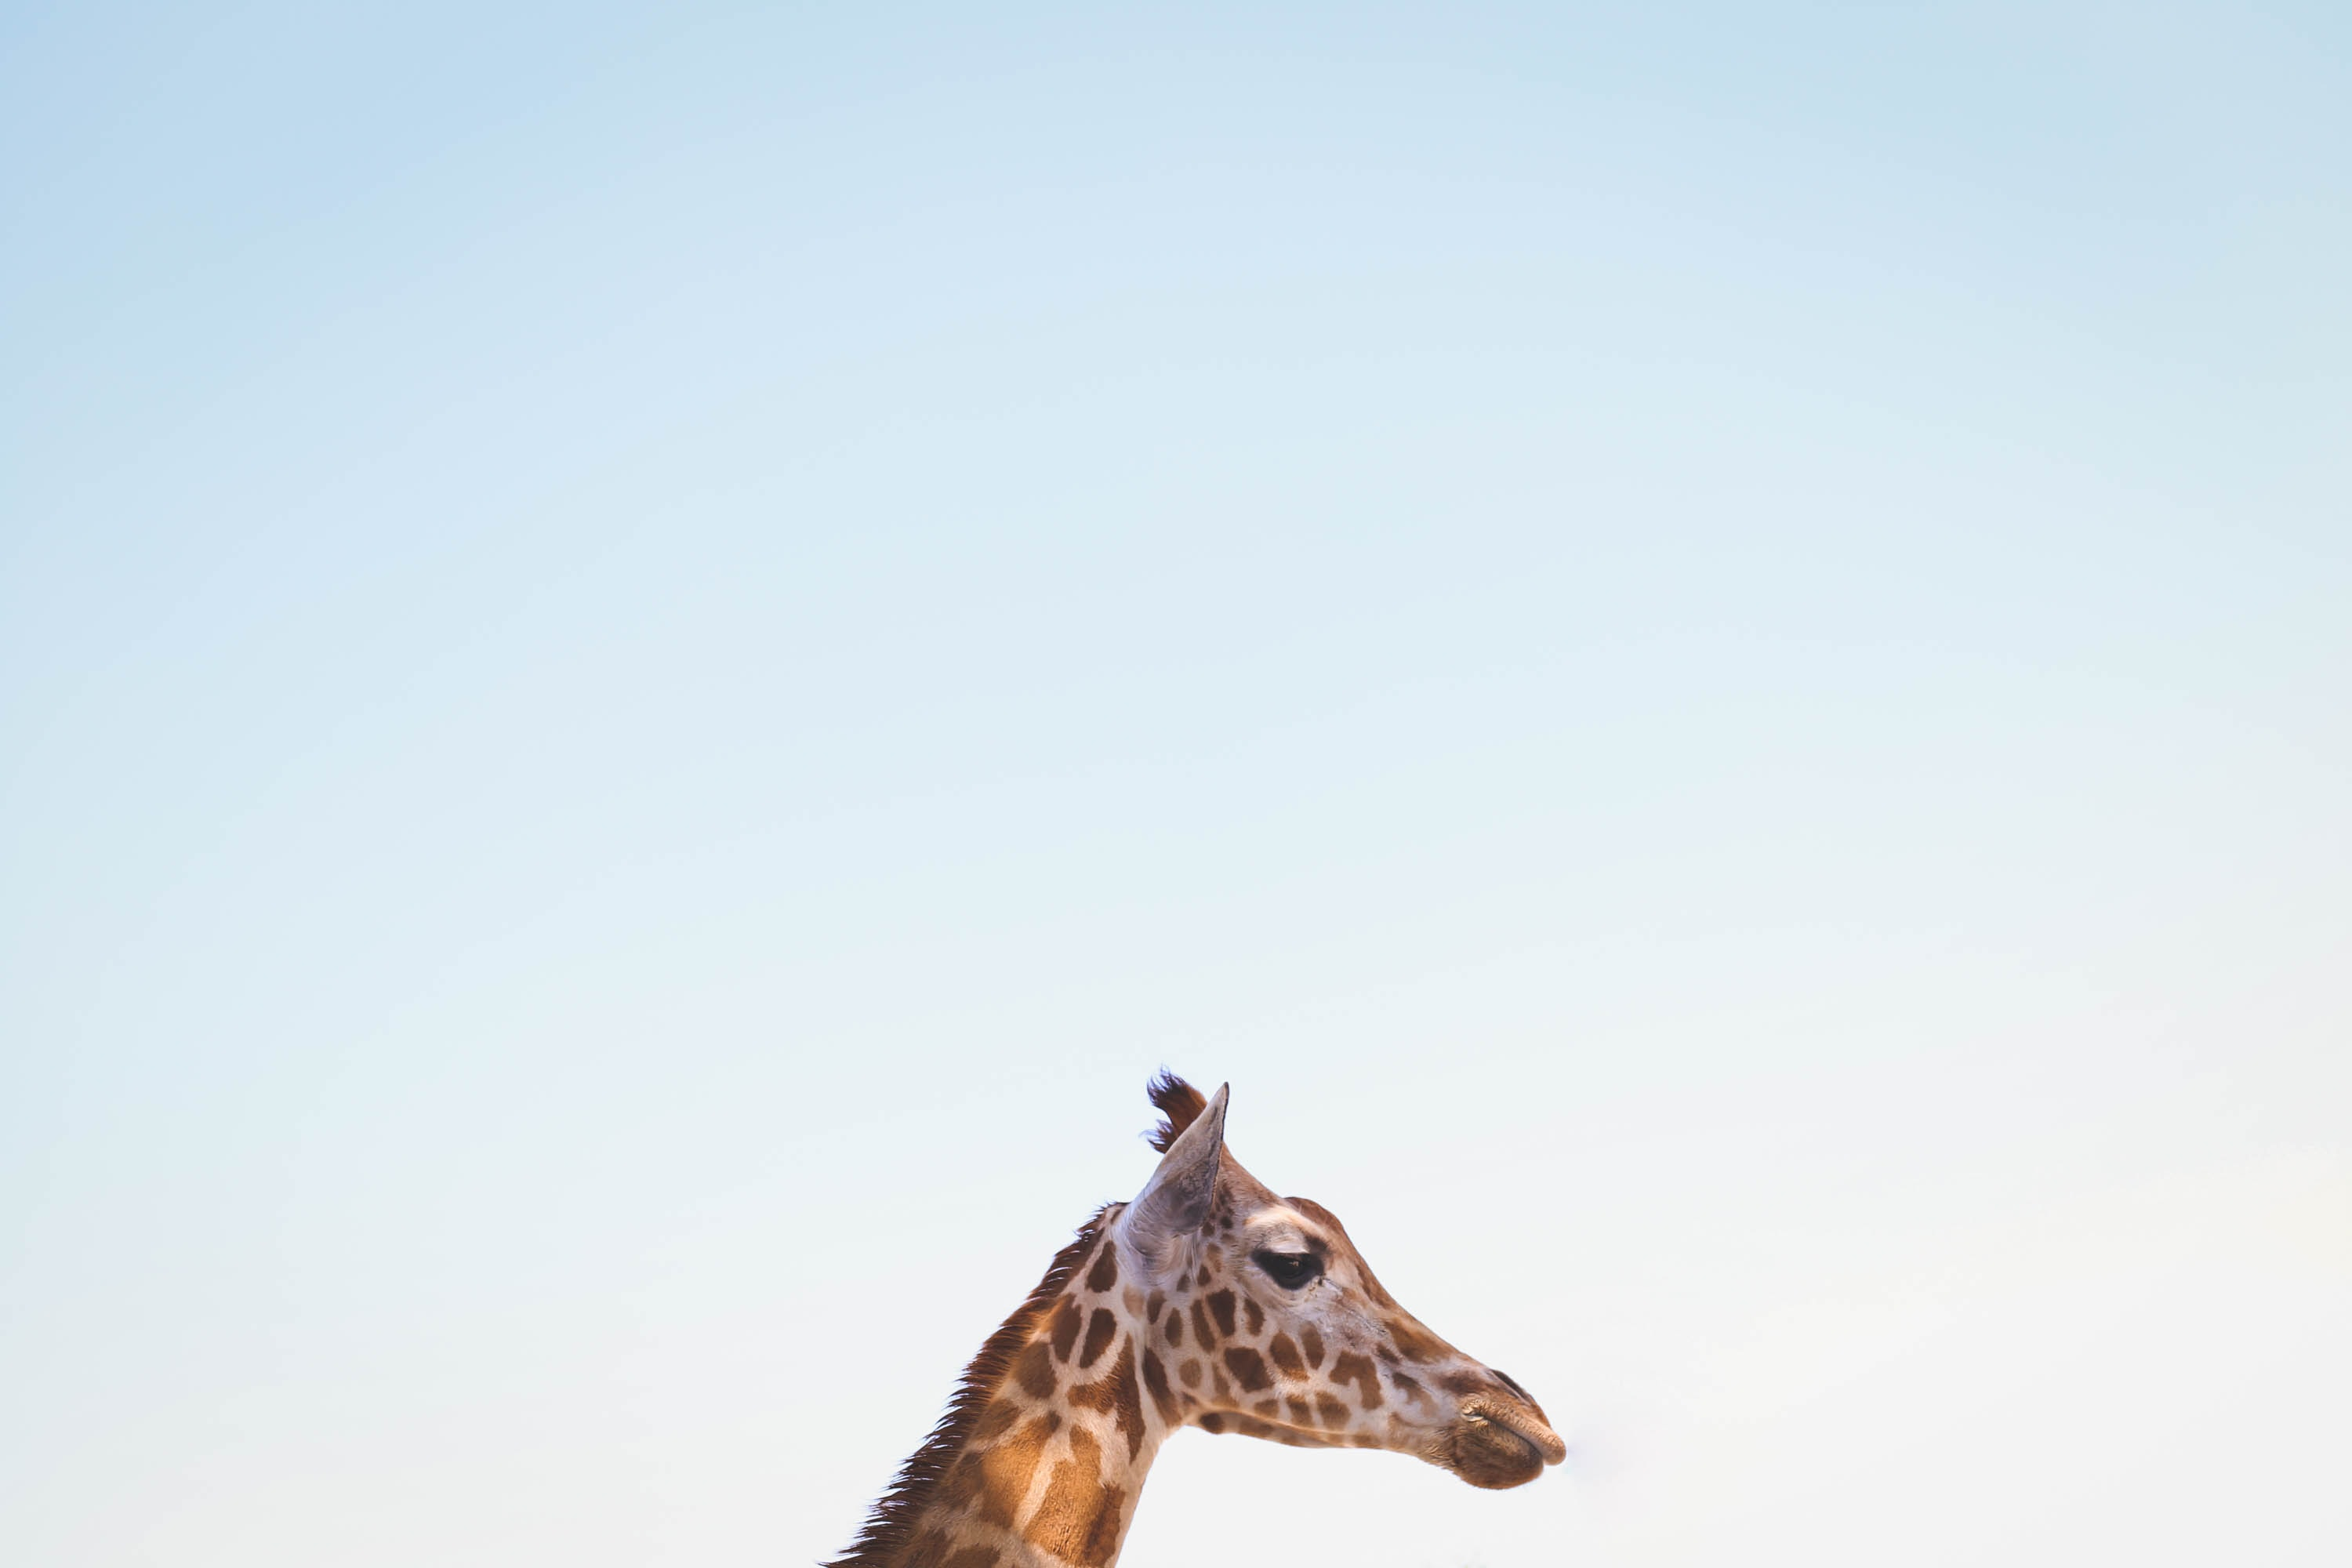 photo of giraffe